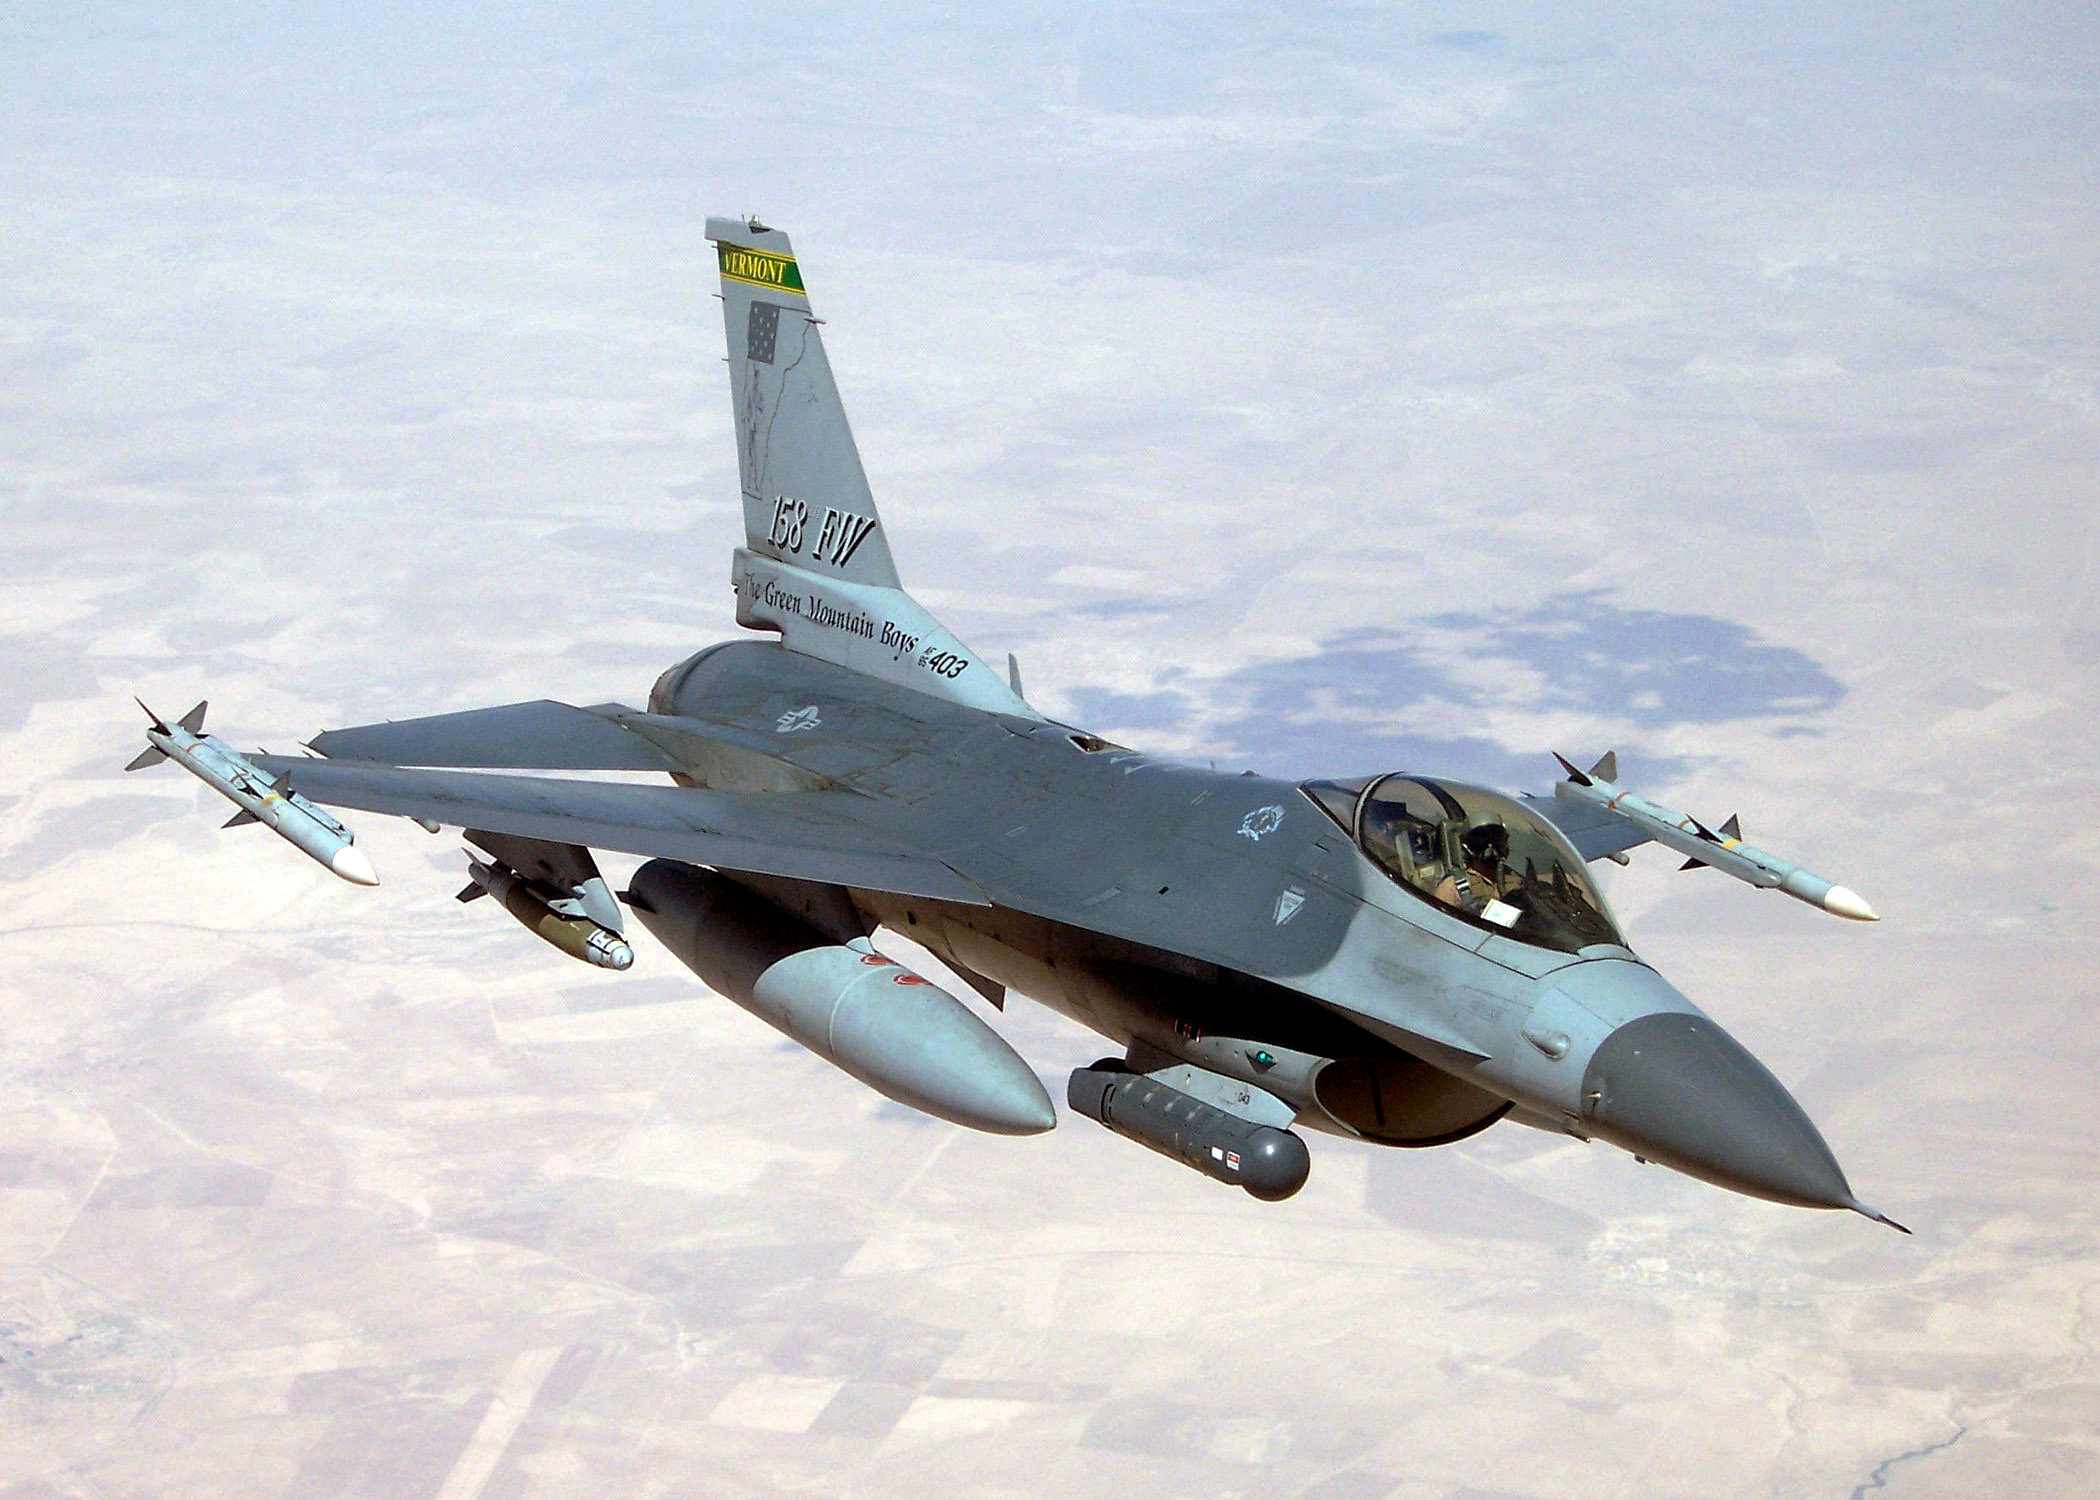 File:F-16 Fighting Falcon-Thomas Ireland.jpg